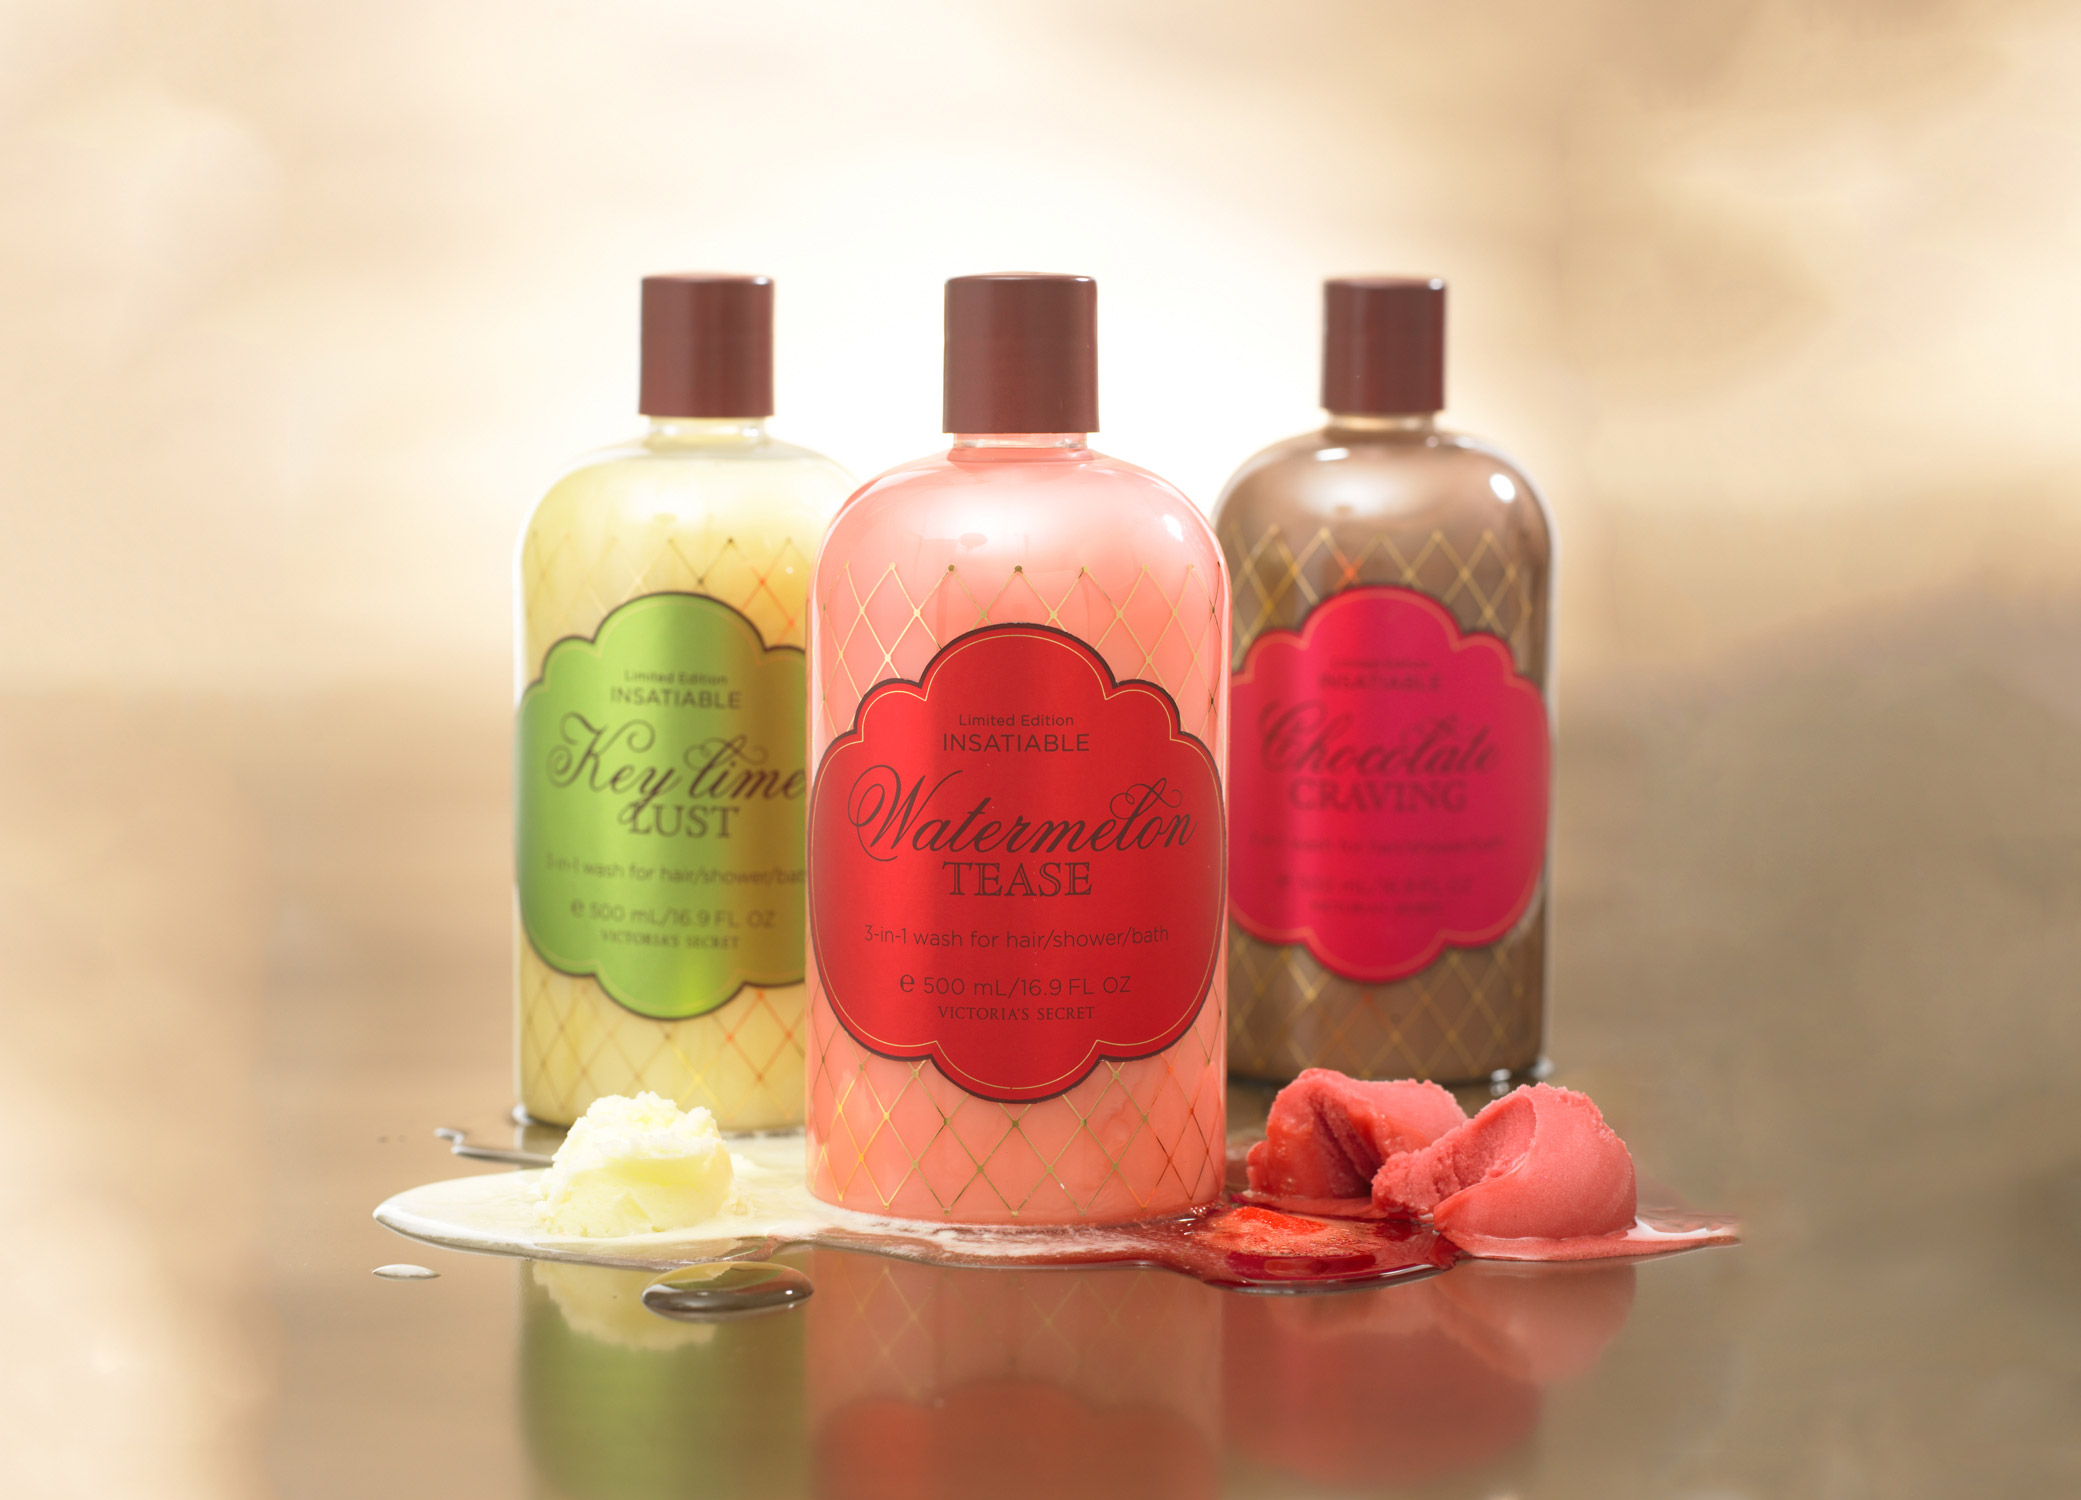 Victoria's Secret Insatiable packaging design bottles for three different body washes that align with the body spray and body lotion.